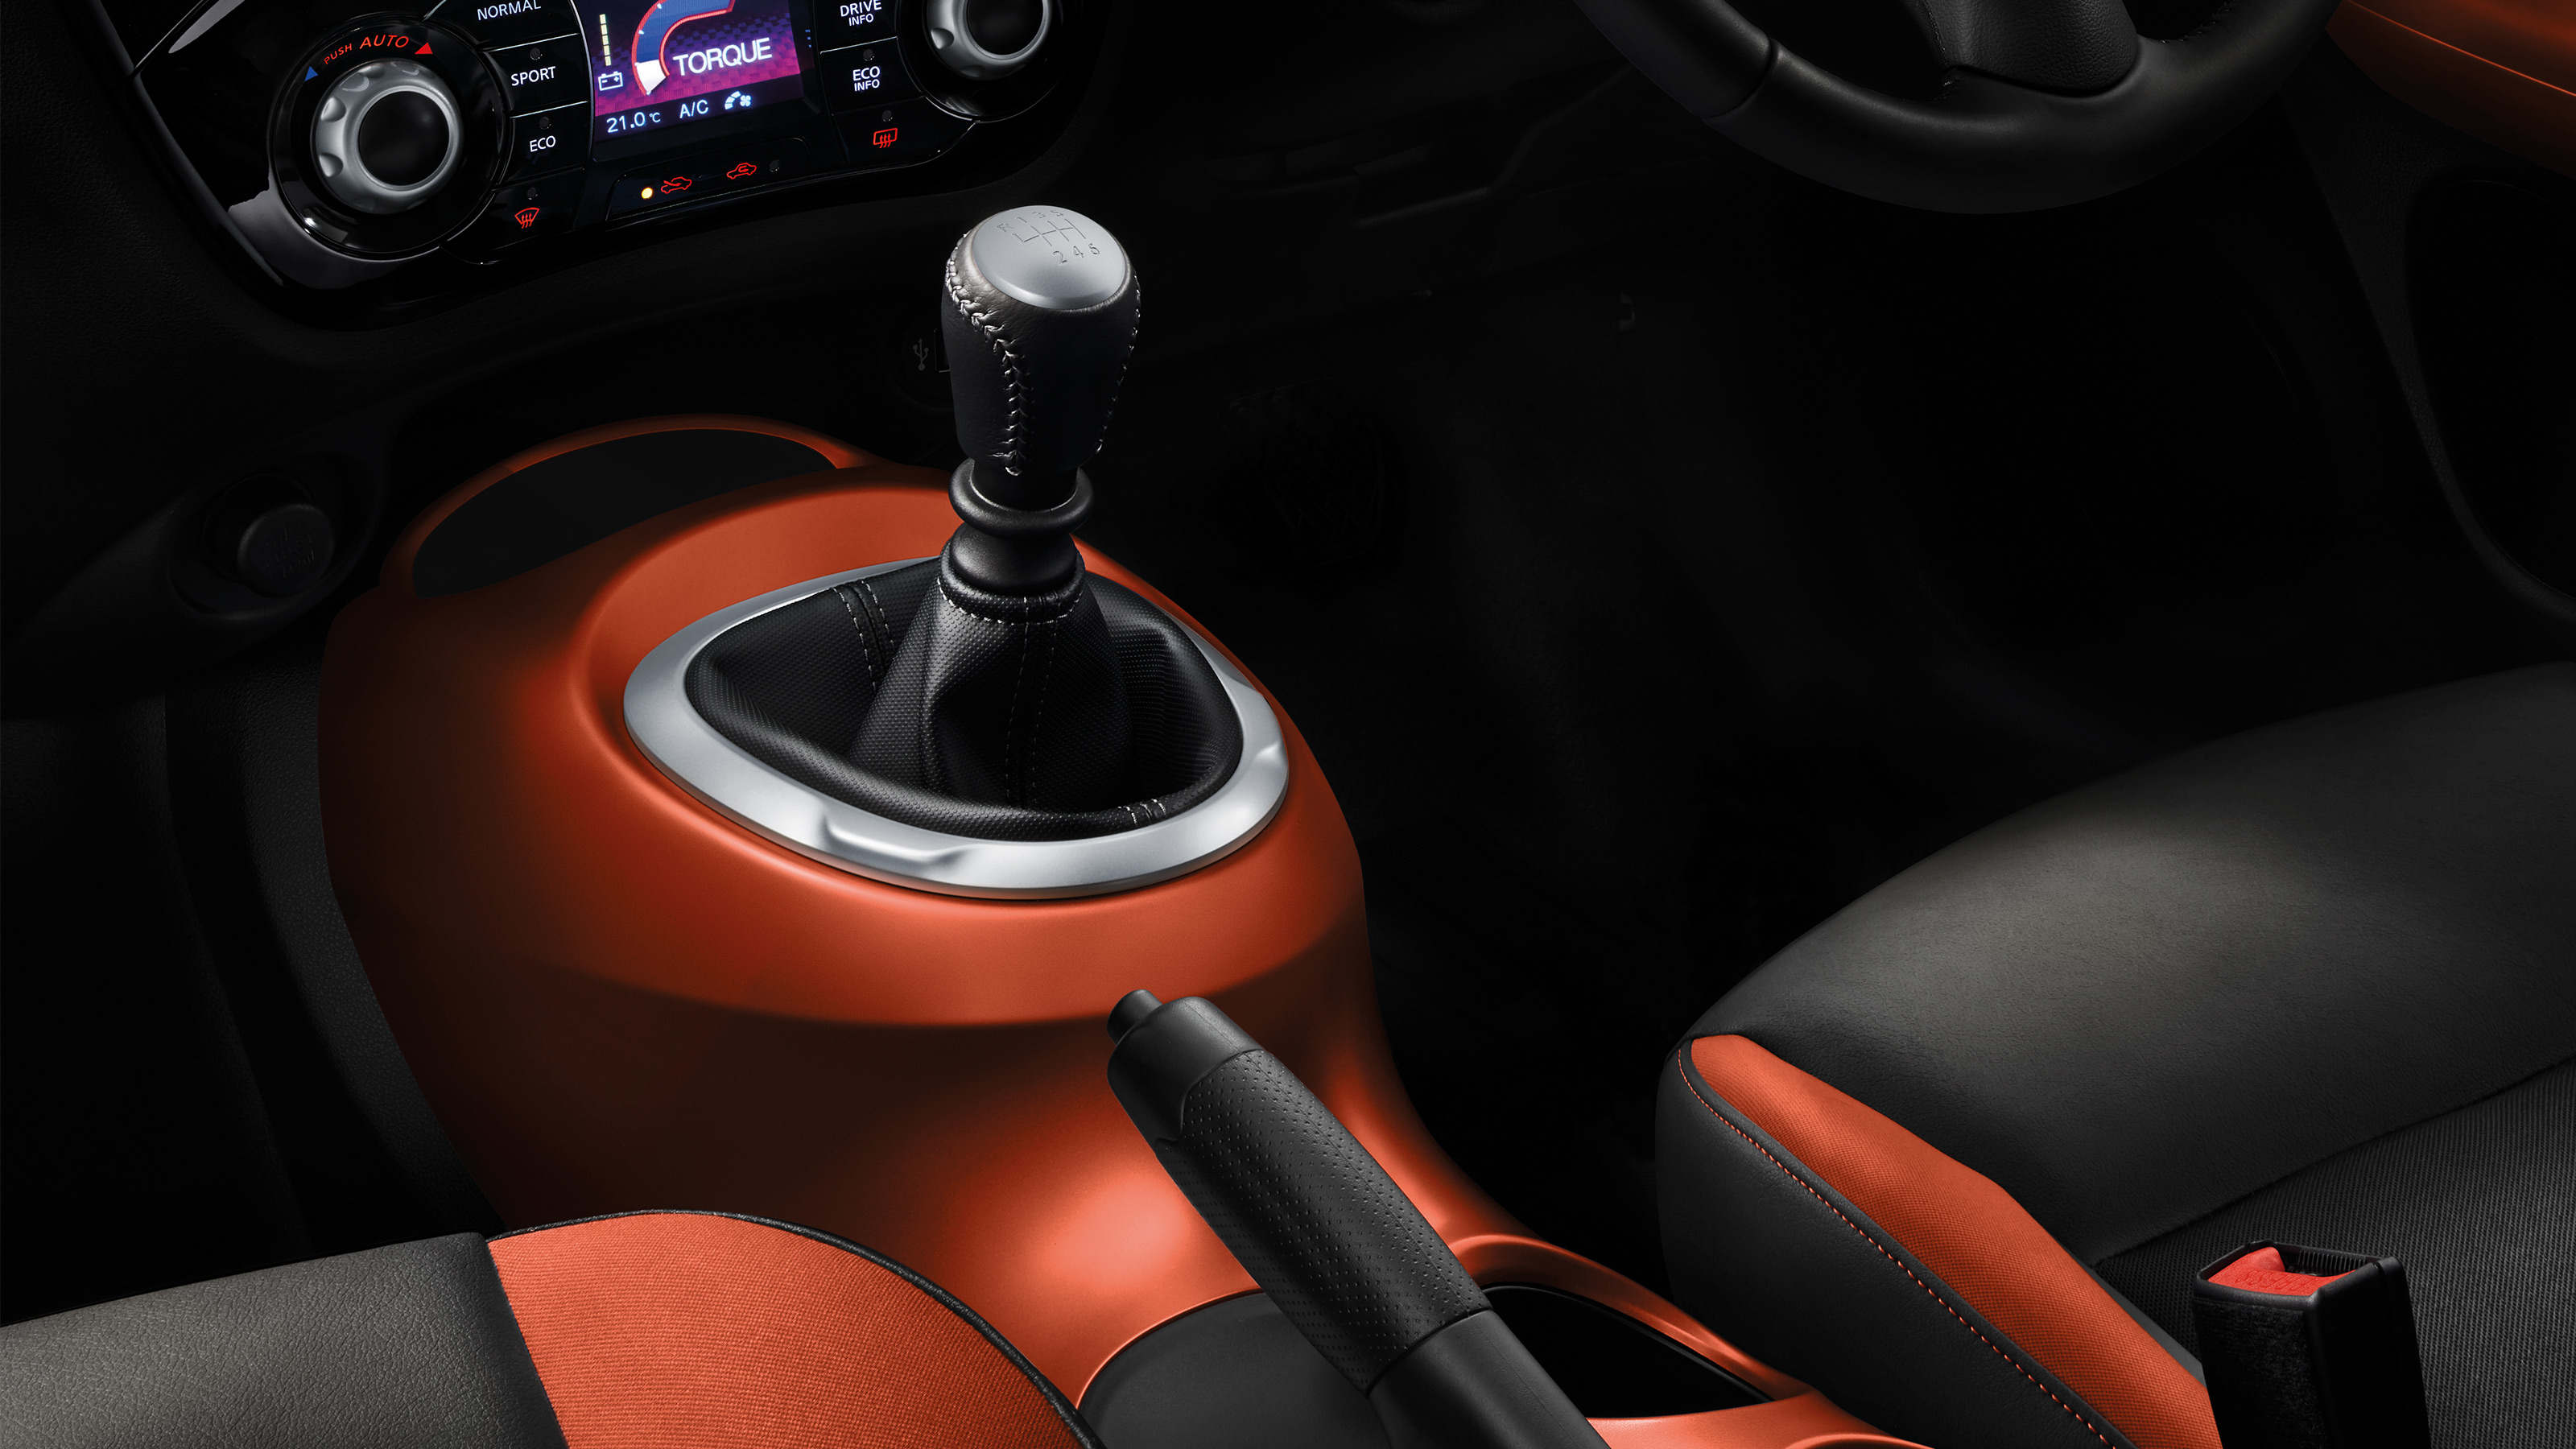 2018 Nissan JUKE orange interior accents